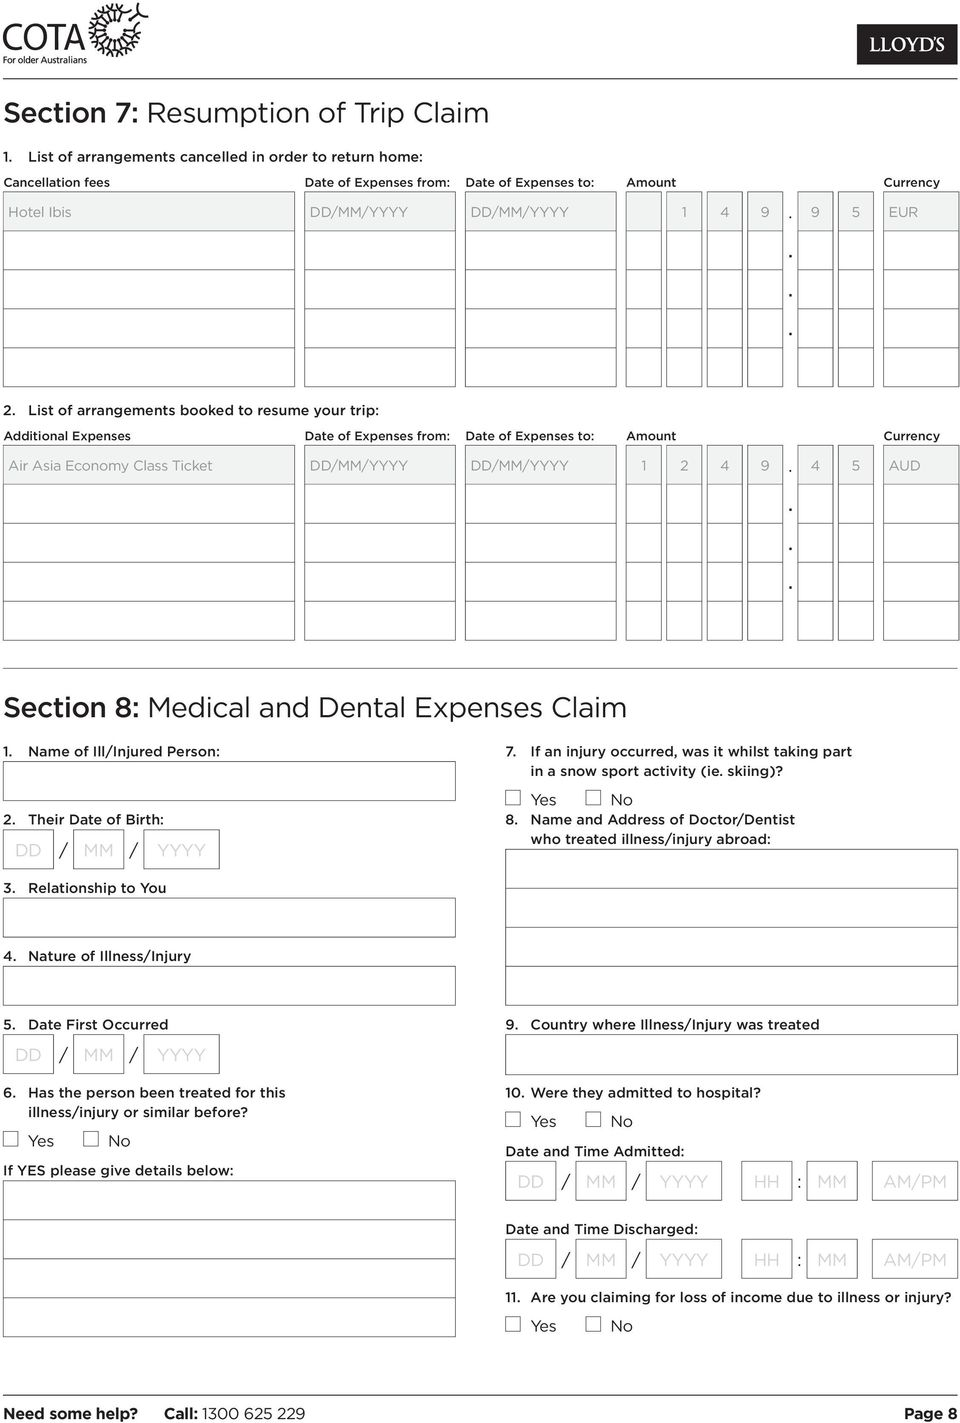 DD/MM/YYYY 1 2 4 9 4 5 AUD Section 8: Medical and Dental Expenses Claim 1 Name of Ill/Injured Person: 2 Their Date of Birth: 7 If an injury occurred, was it whilst taking part in a snow sport